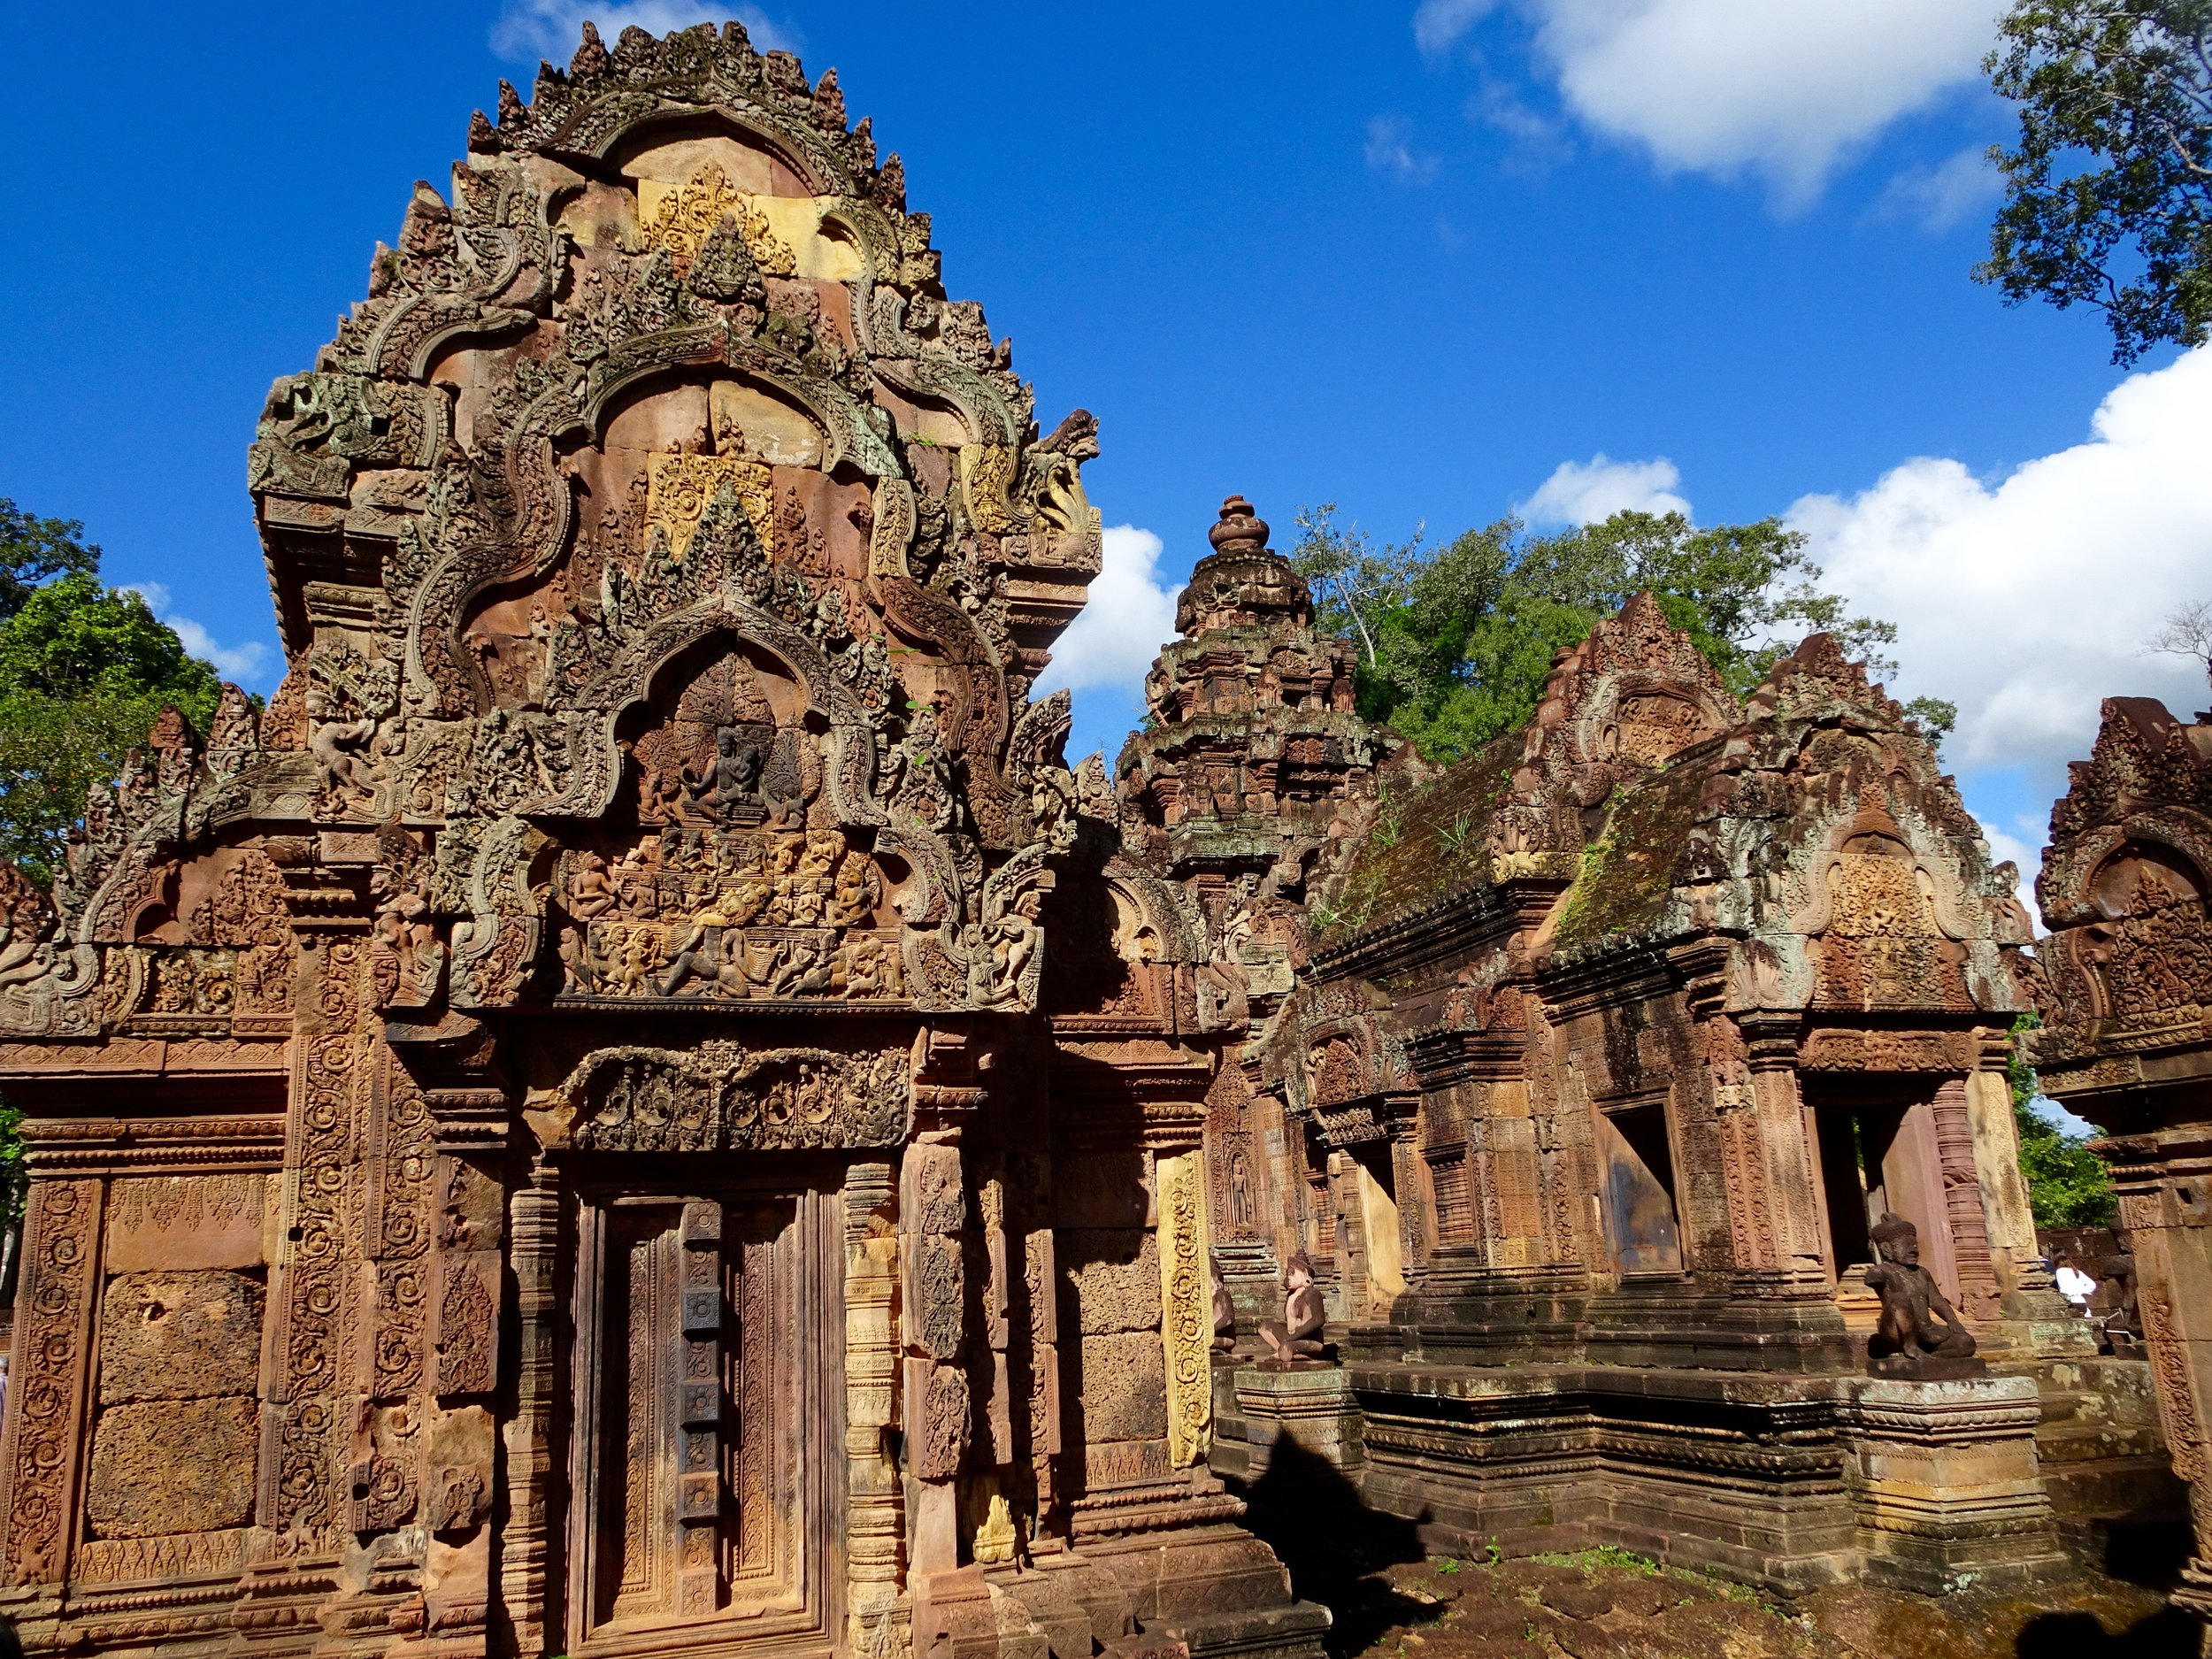 BANTEAY SREI, ANGKOR WAT TEMPLE COMPLEX, SIEM REAP, CAMBODIA - M.QUIGLEY